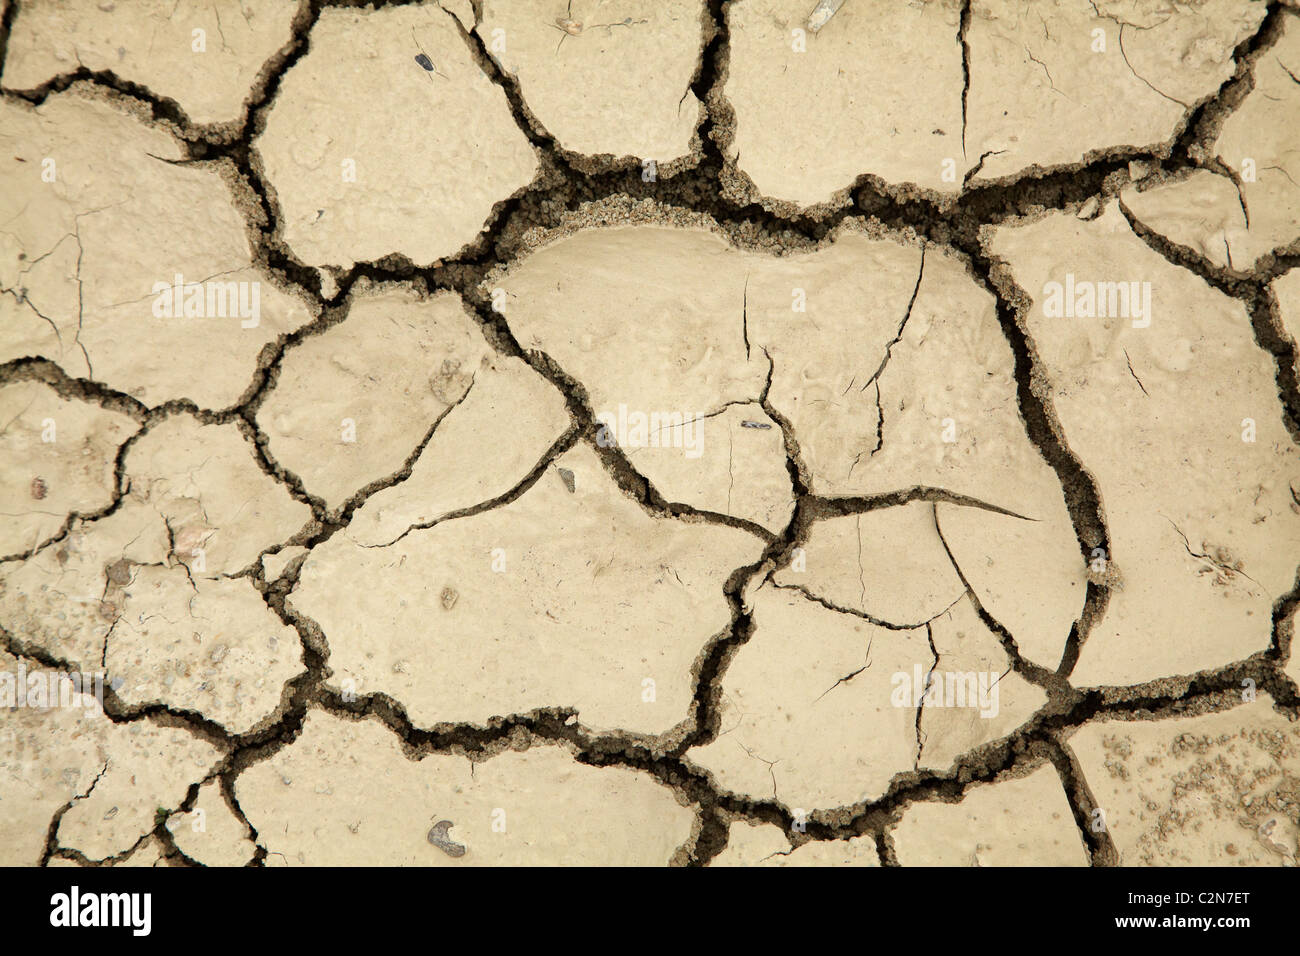 Drought, Central Otago, South Island, New Zealand - Stock Image